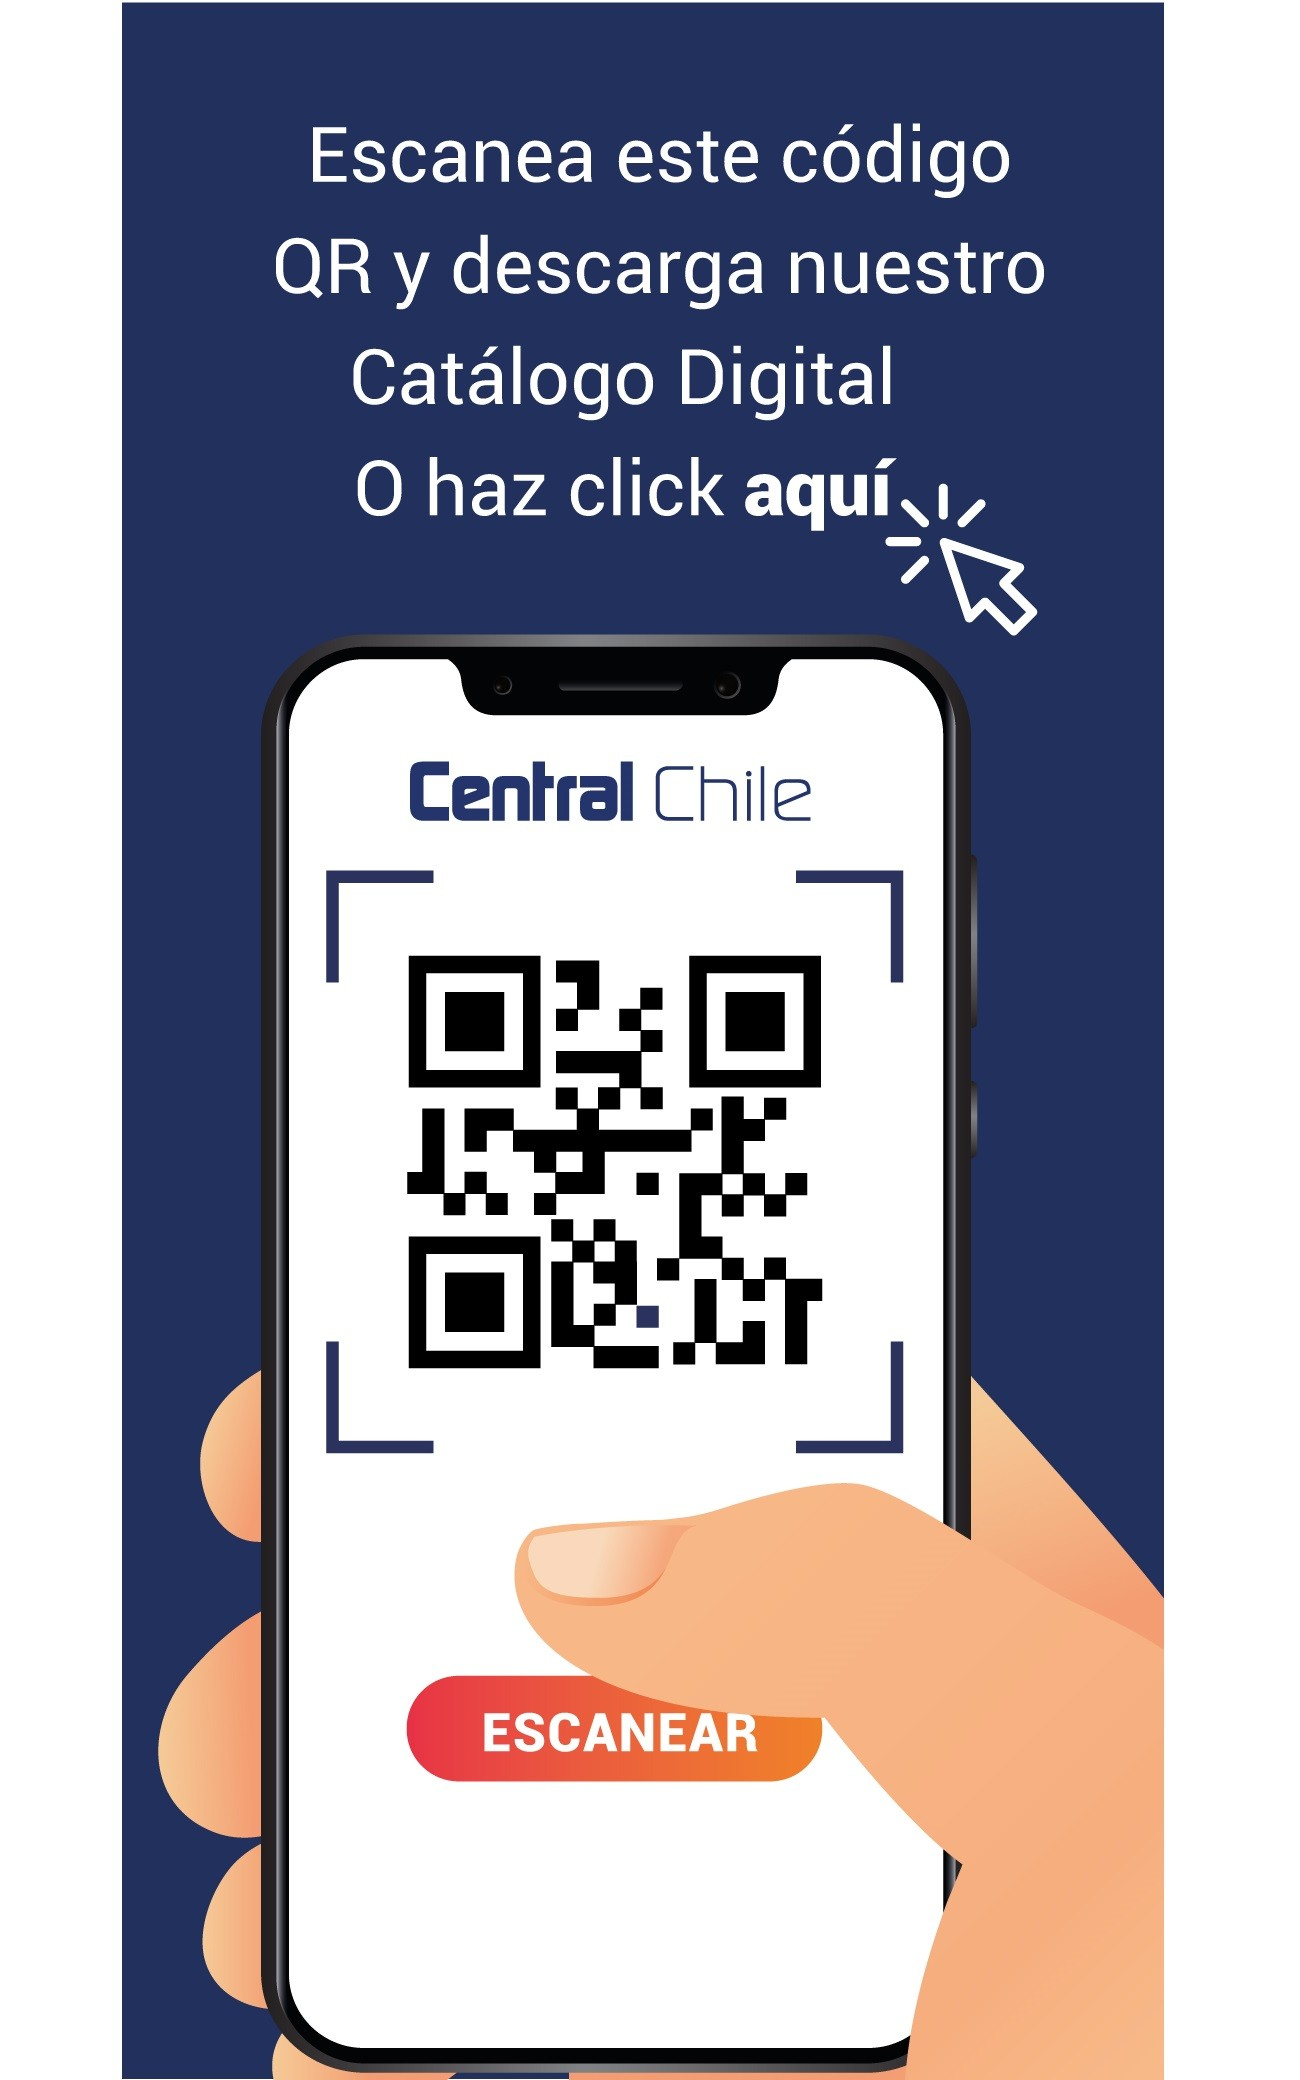 https://centralchile.cl/modules/iqithtmlandbanners/uploads/images/5fda0eb5efe3b.jpg